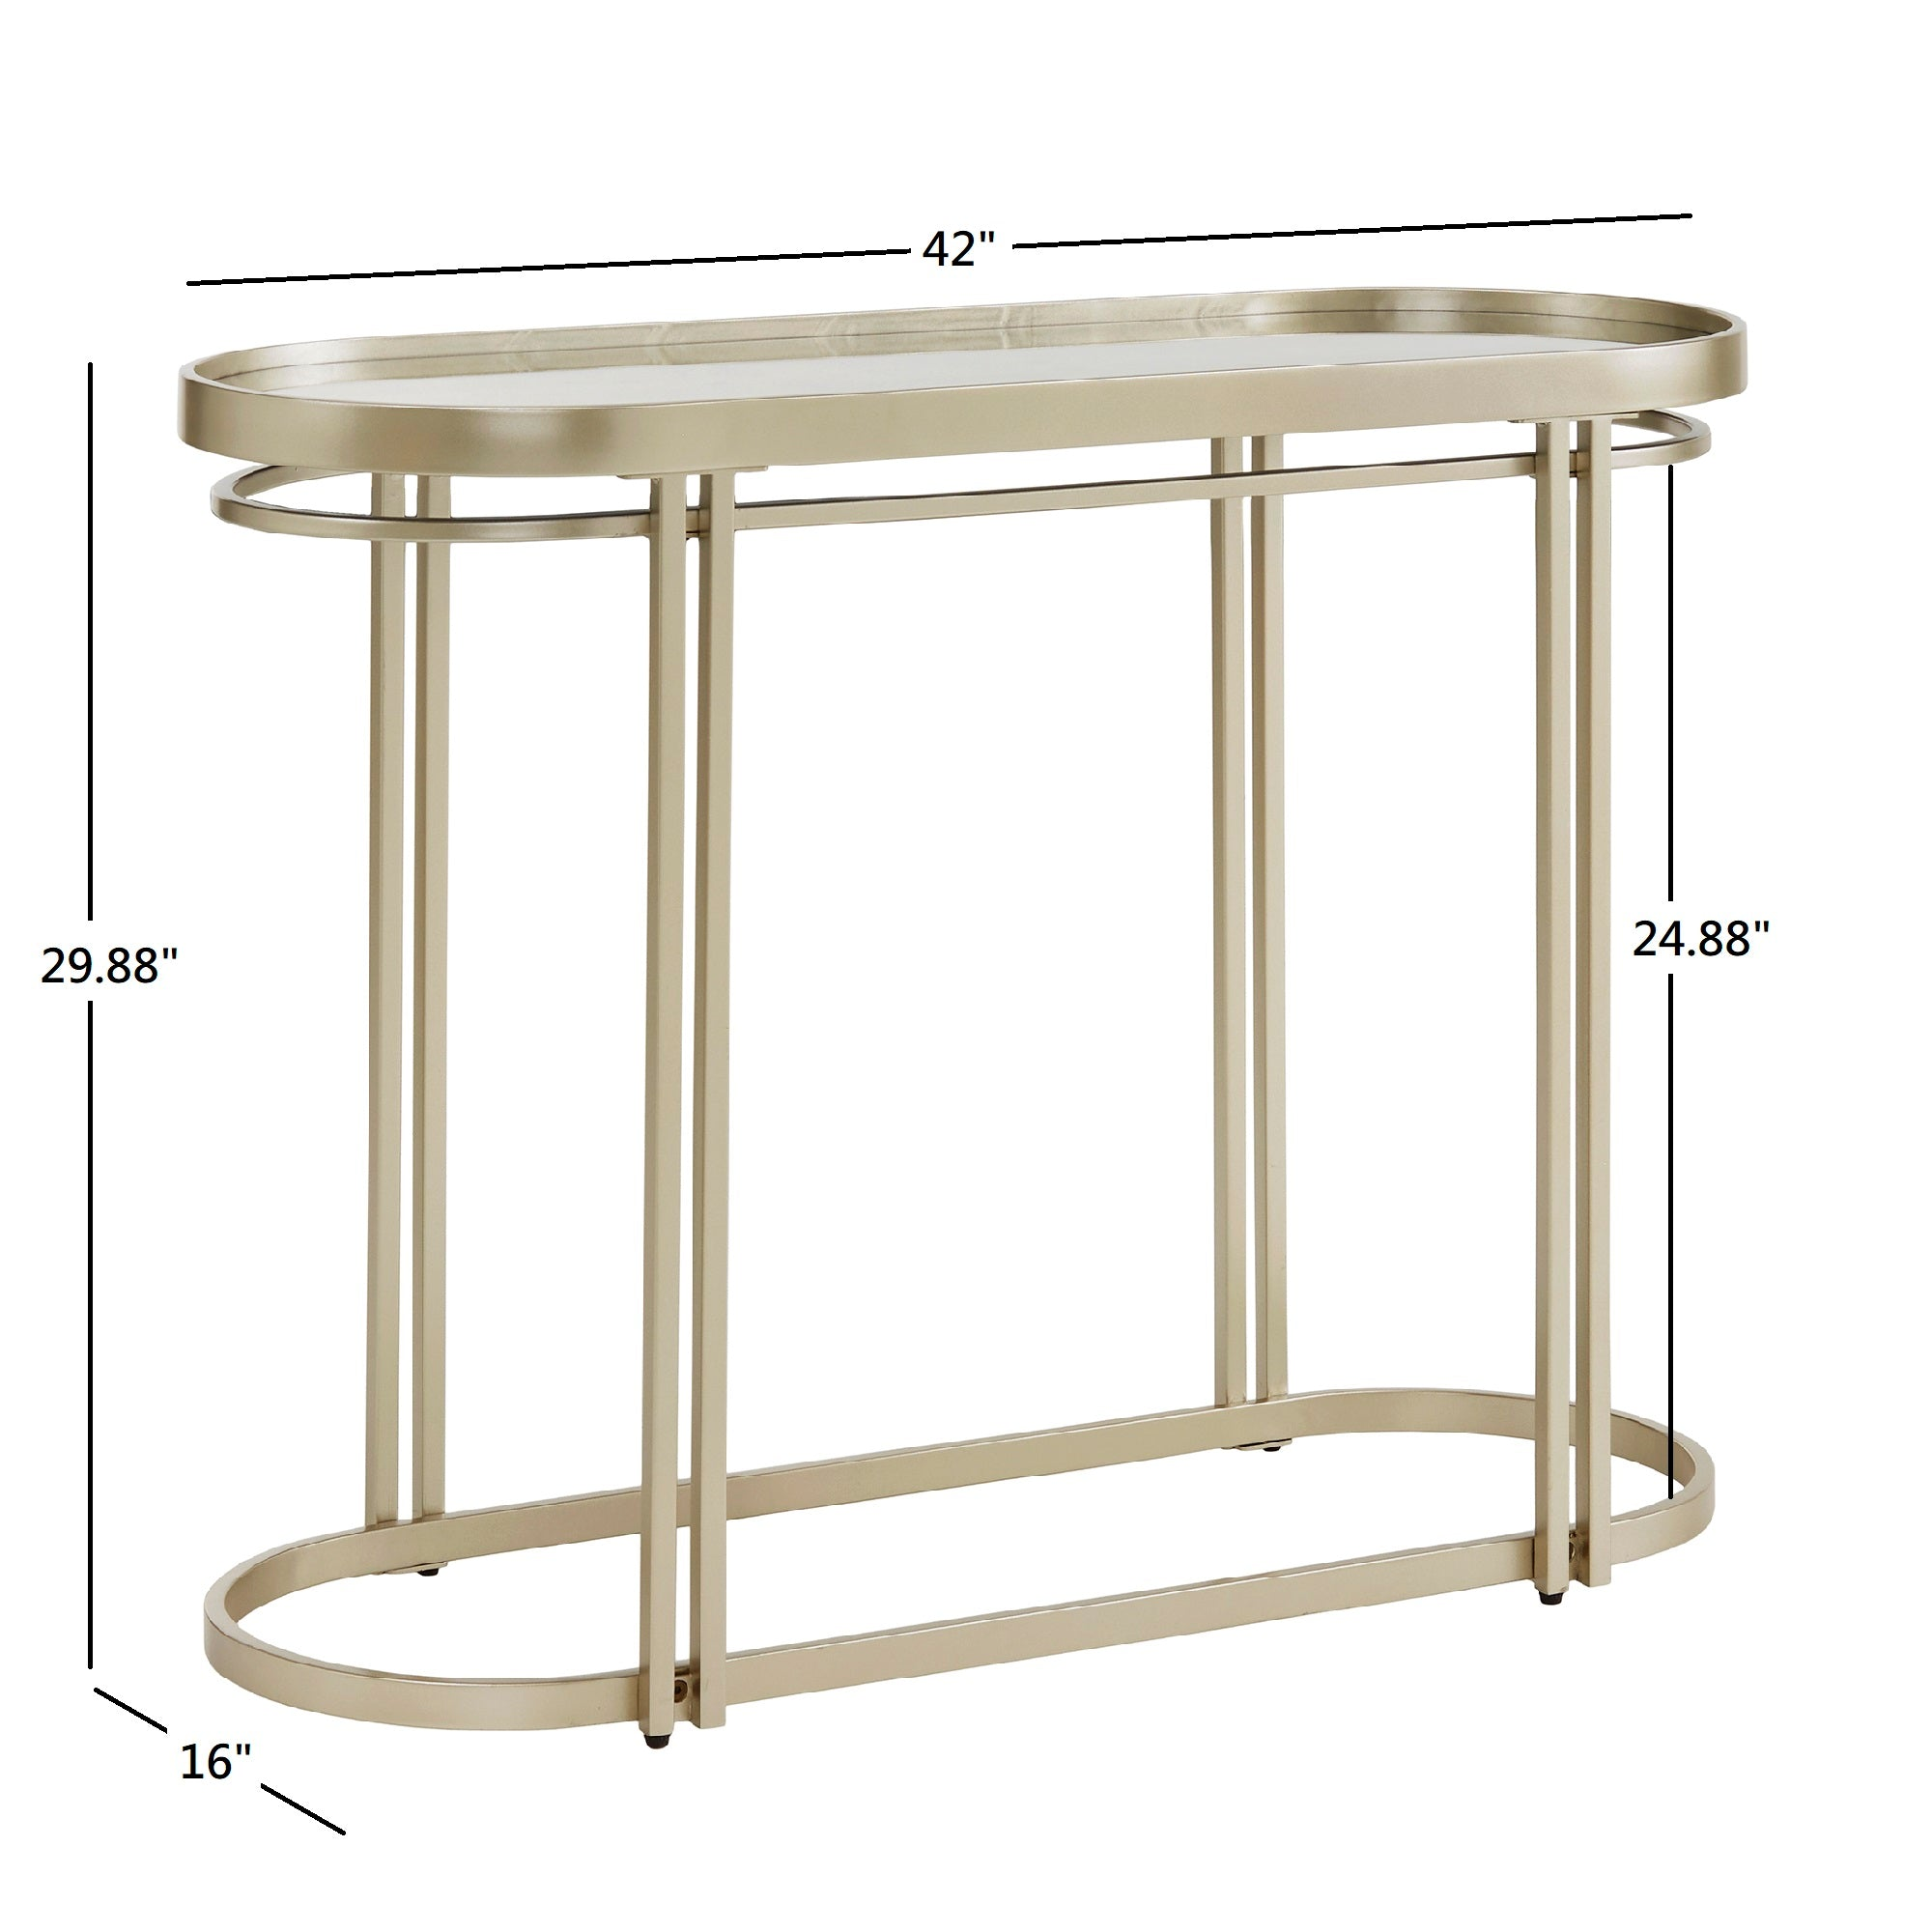 Champagne Silver Finish Oval Antique Mirror Top Sofa Table